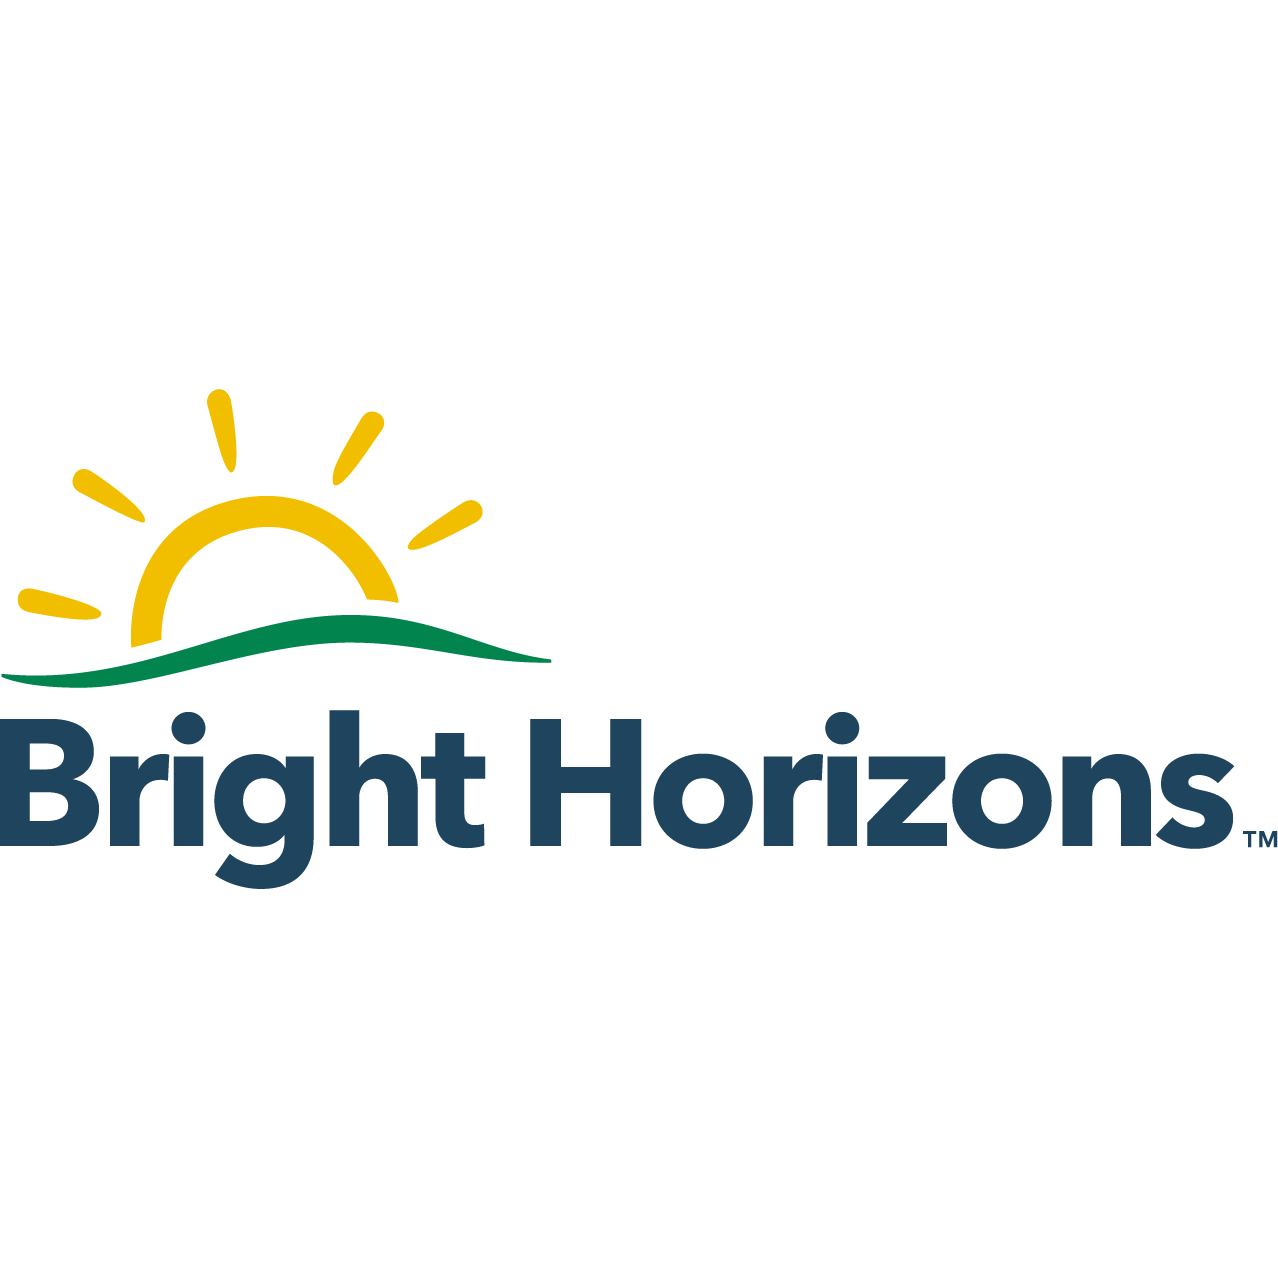 Bright Horizons West Dulwich Day Nursery and Preschool - London, London SE27 9RB - 03339 201829 | ShowMeLocal.com